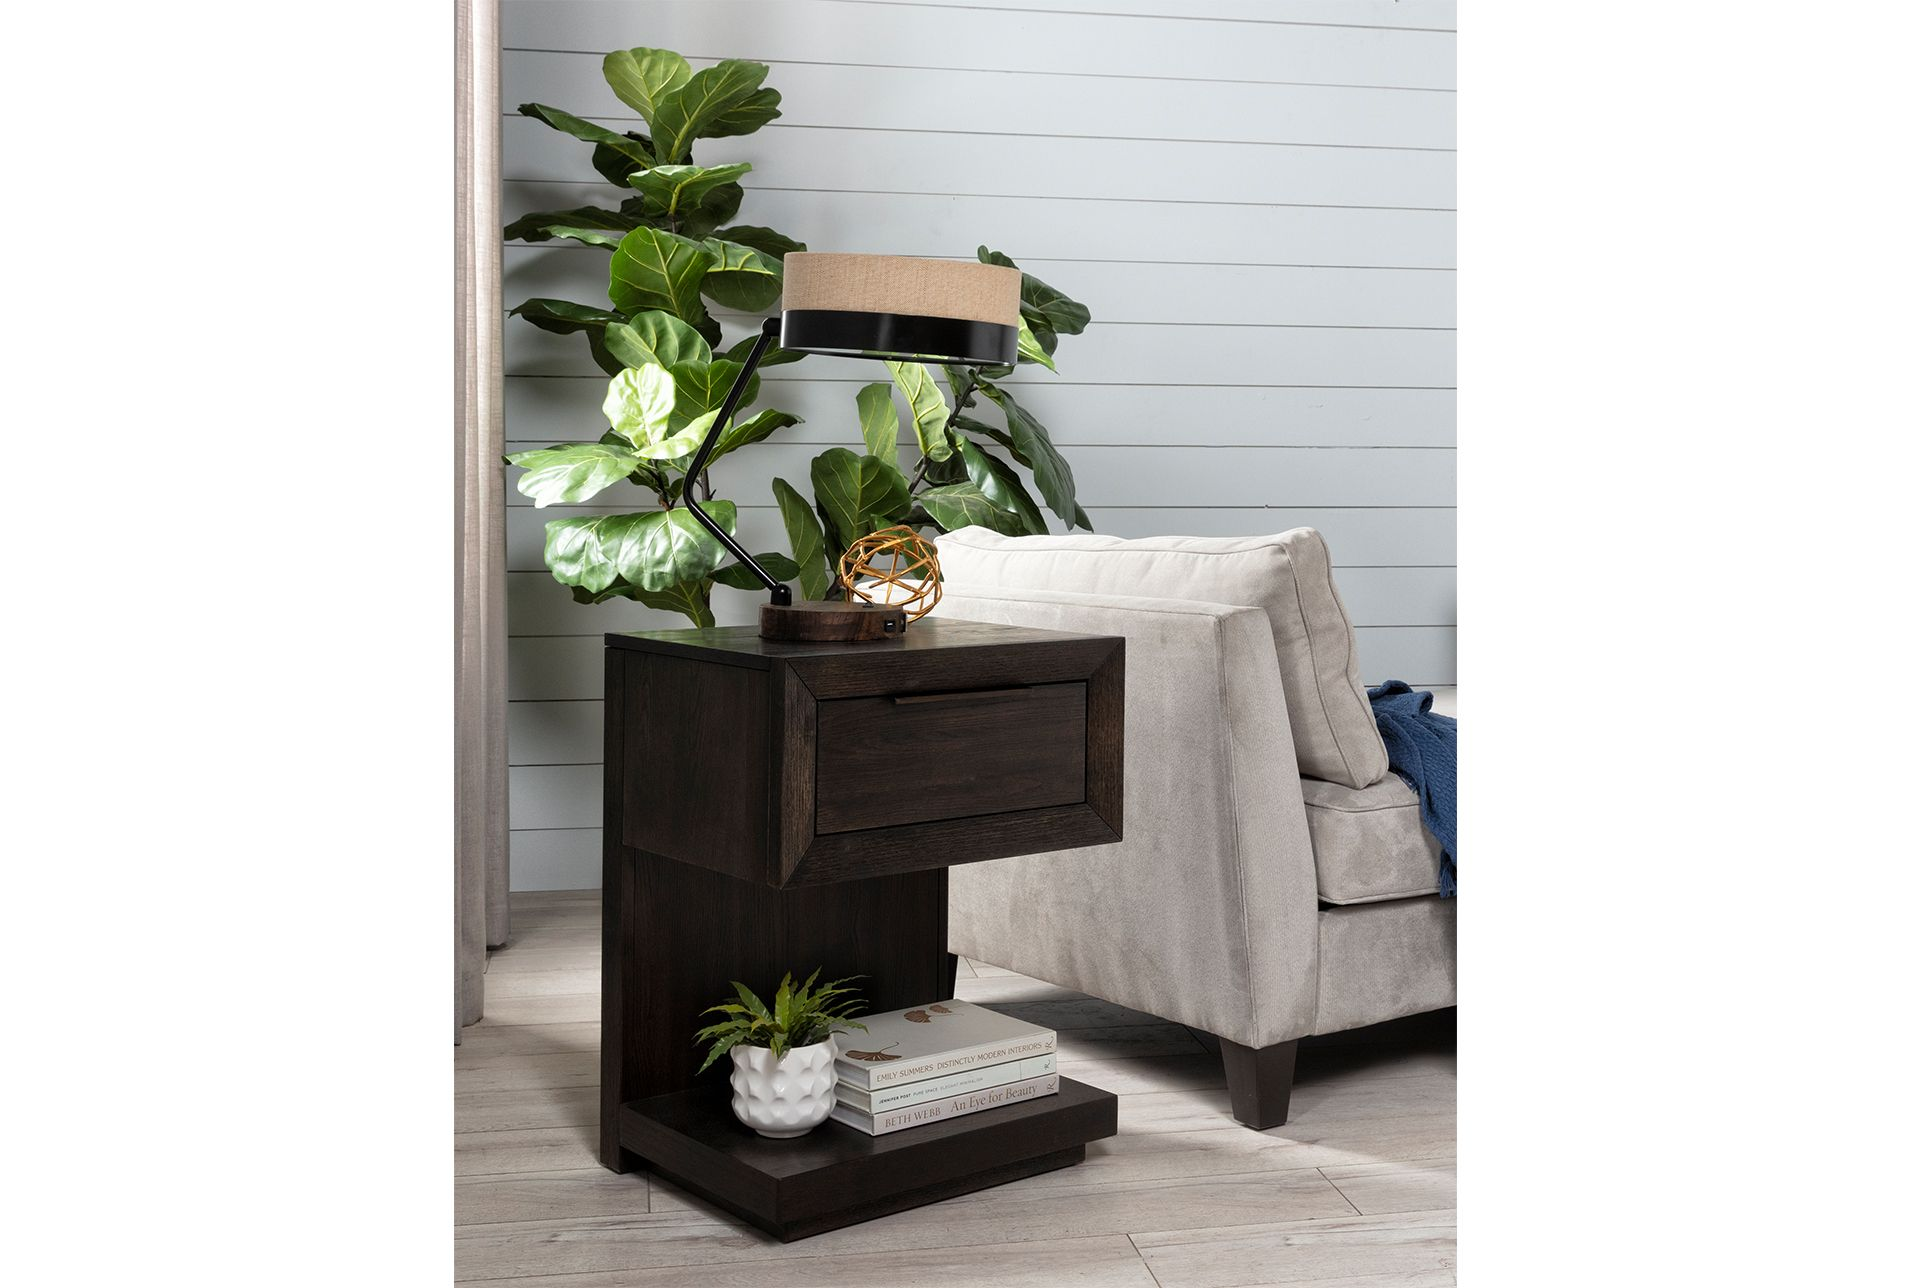 Pierce 1 Drawer Nightstand With Usb Port And Power Outlets Black